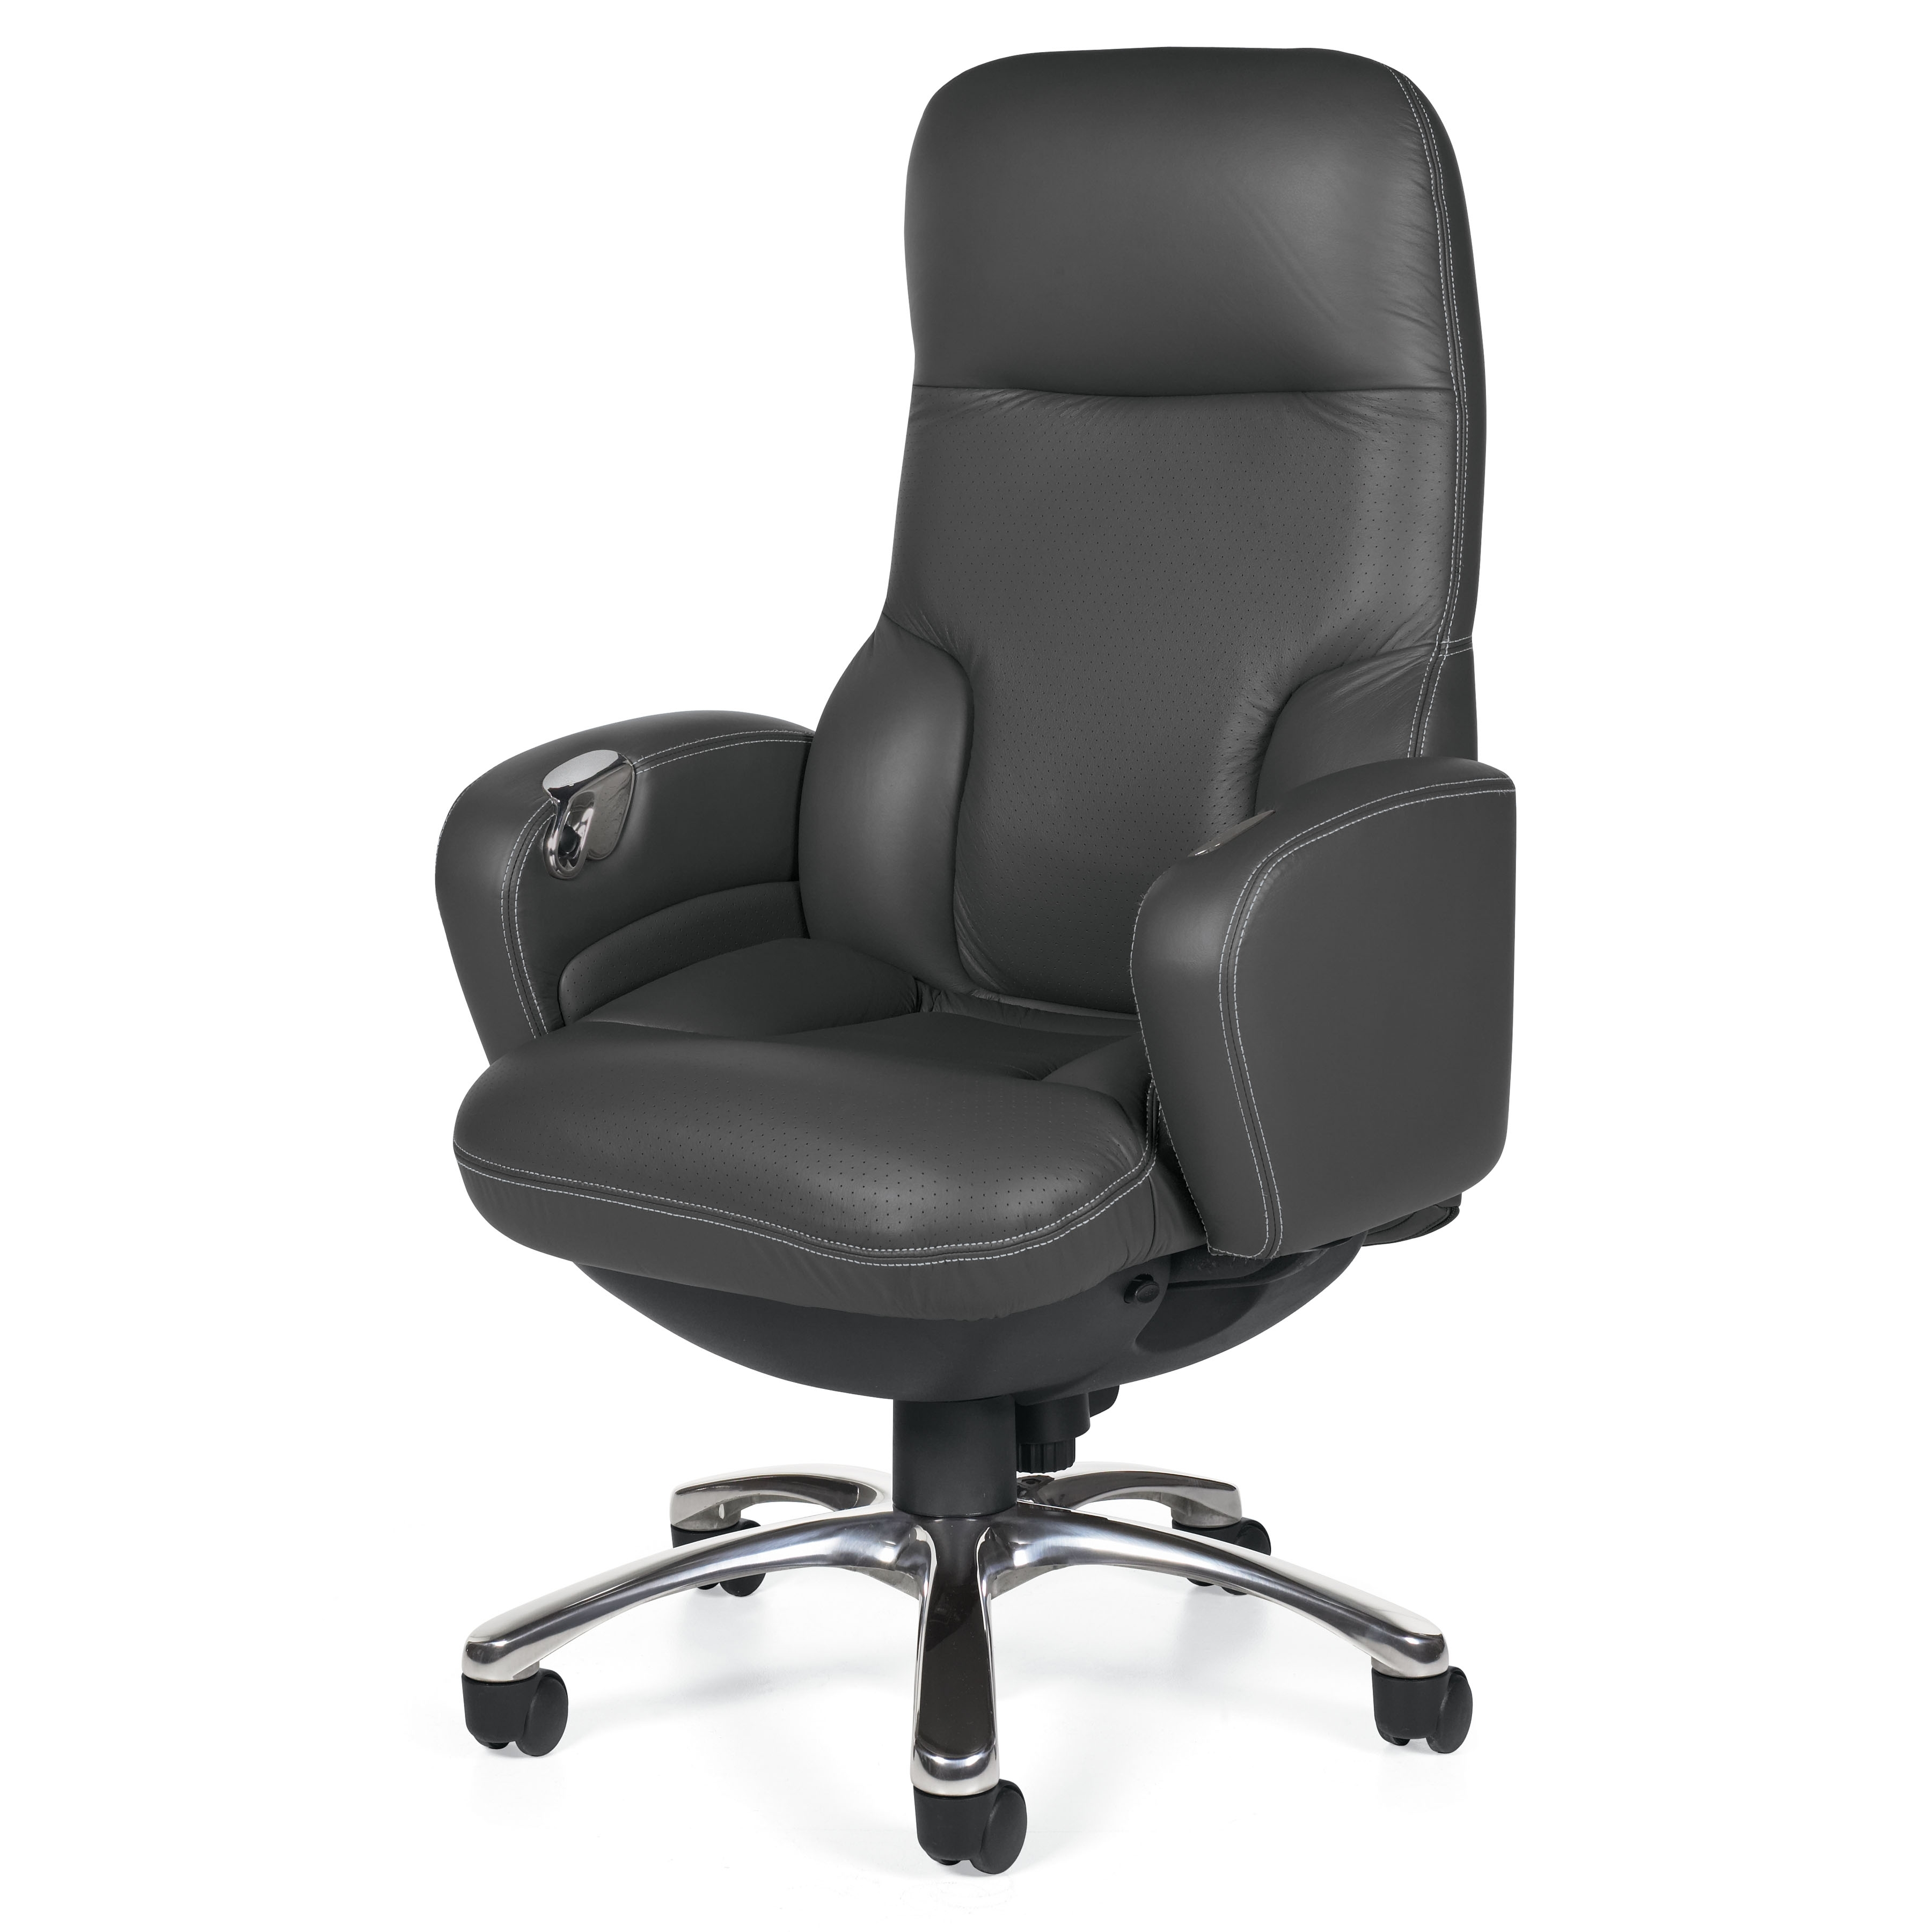 Widely Used Executive Office Chairs With Footrest With Office Chair Footrest Attachment Lean Back Office Chair Laptop (View 13 of 20)